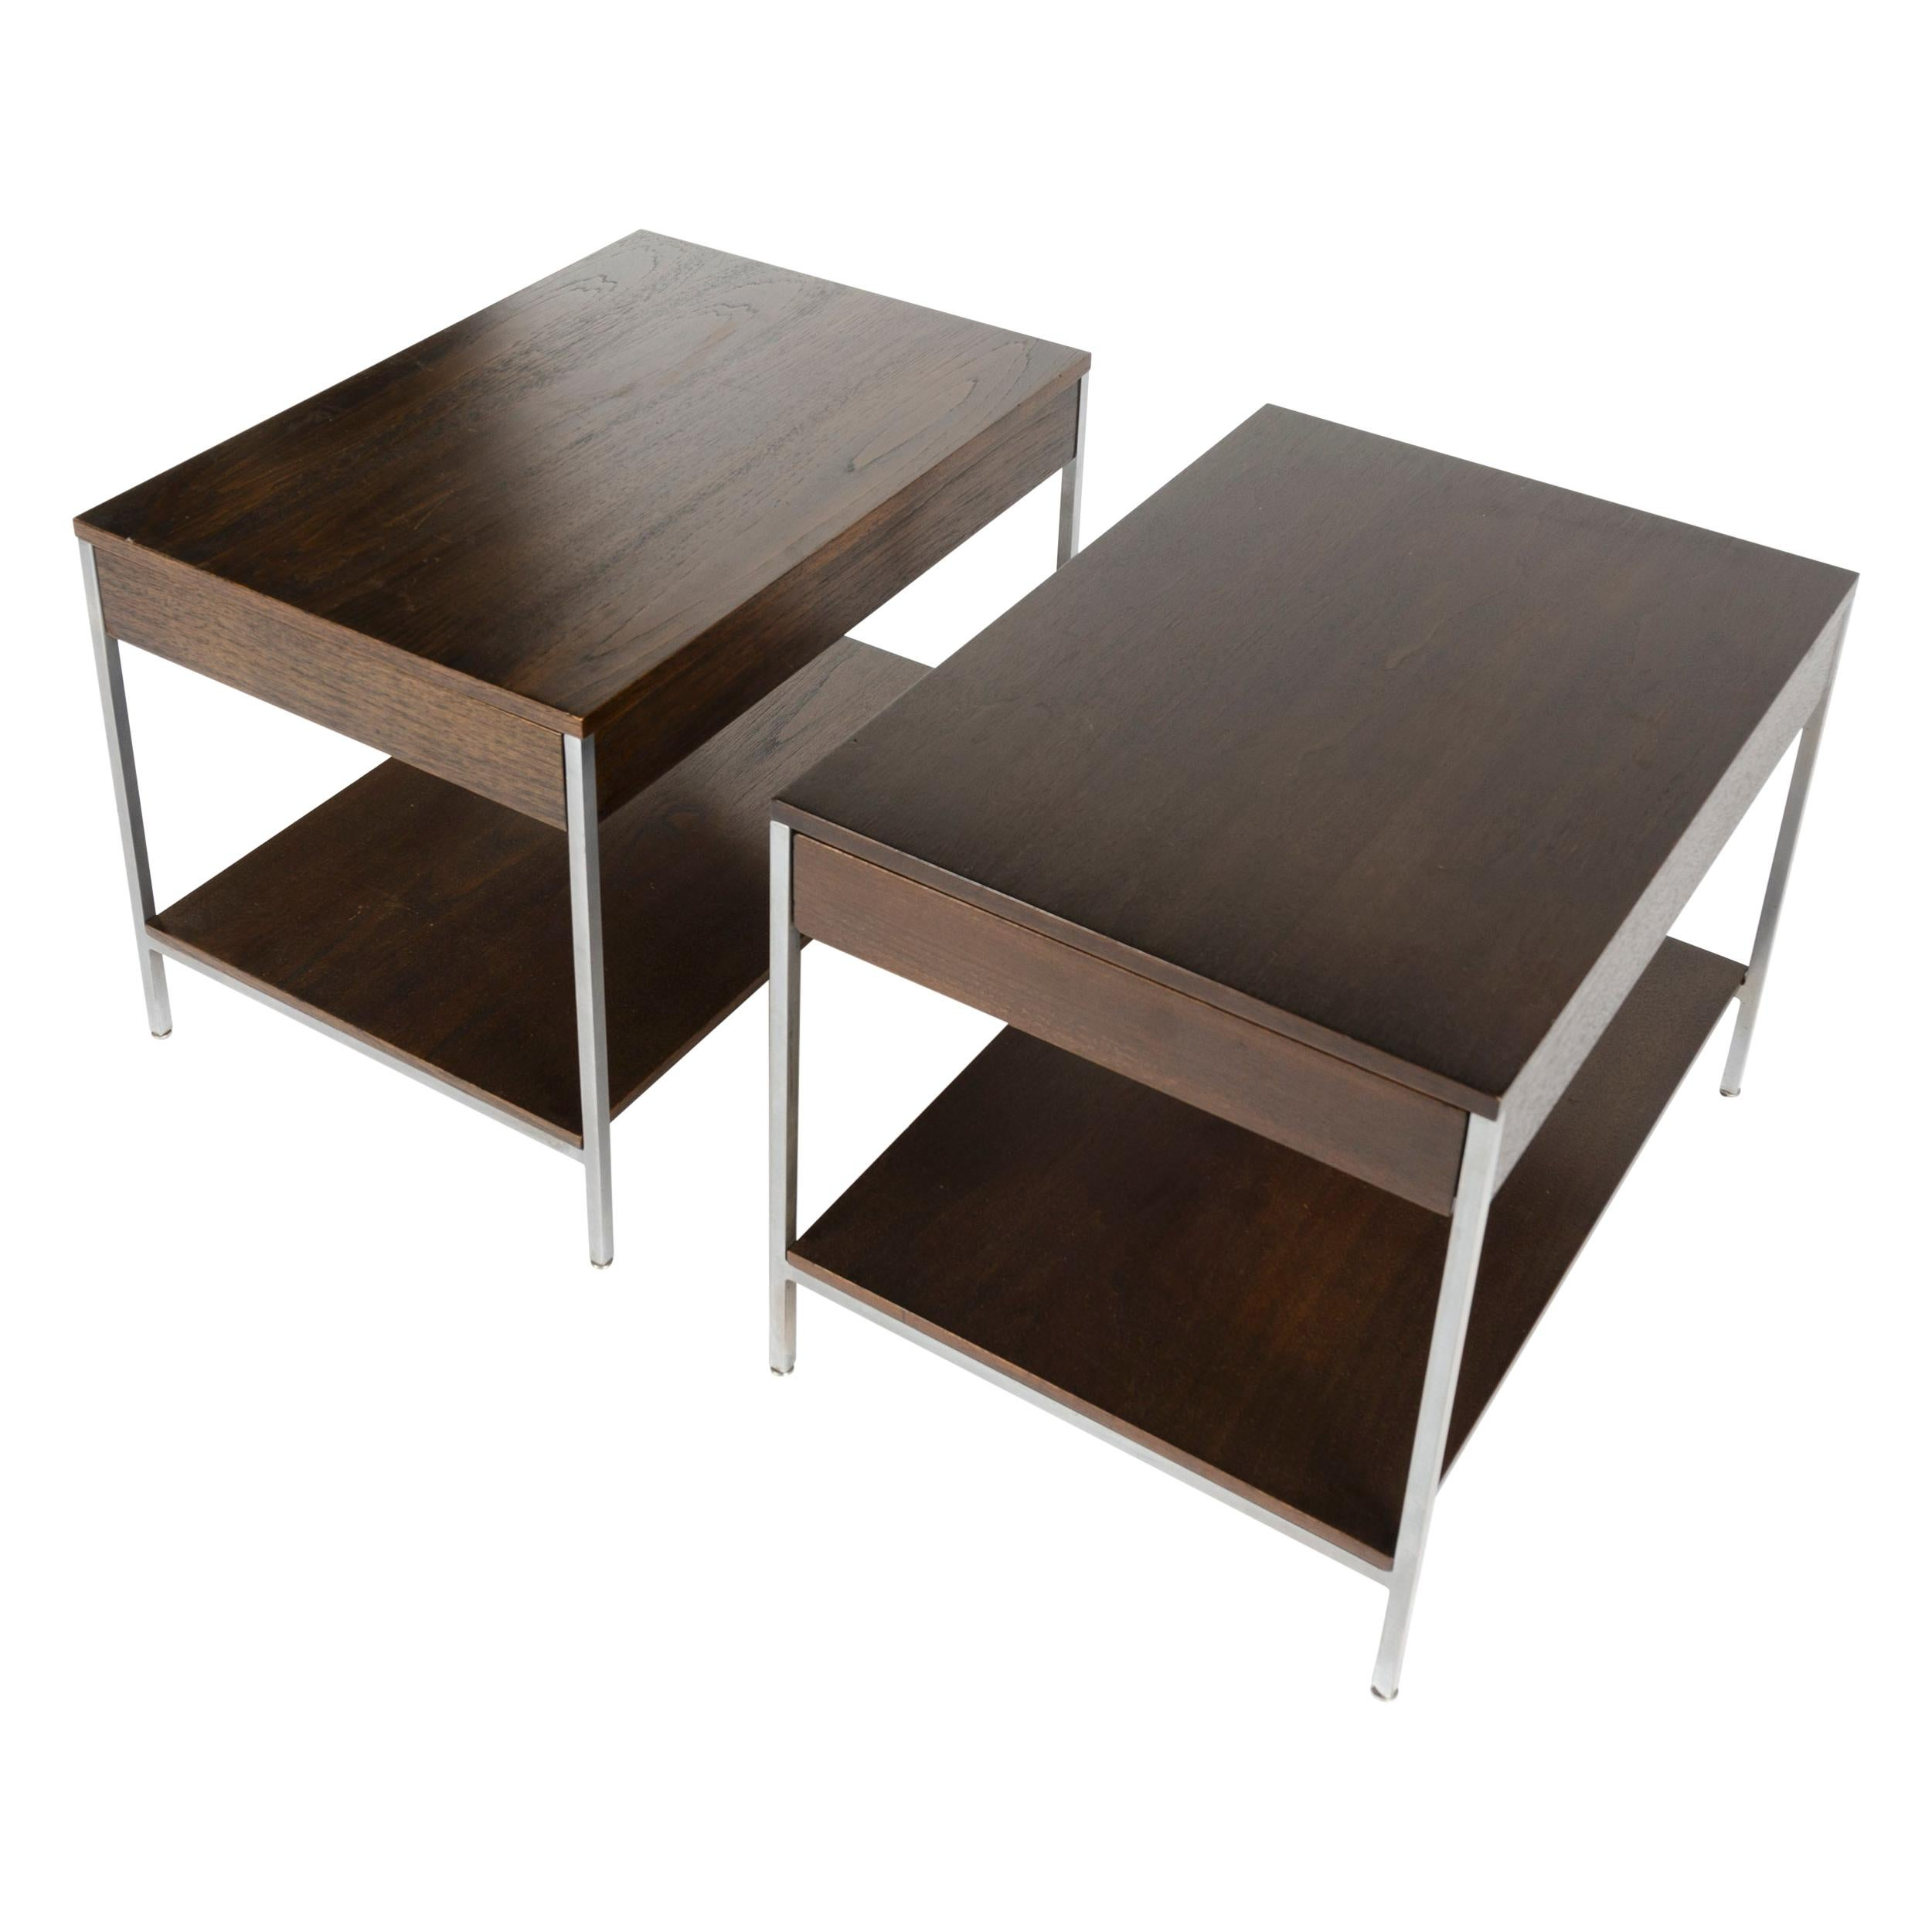 1950s Pair of Mid-Century Modern Nightstands by George Nelson for Herman Miller